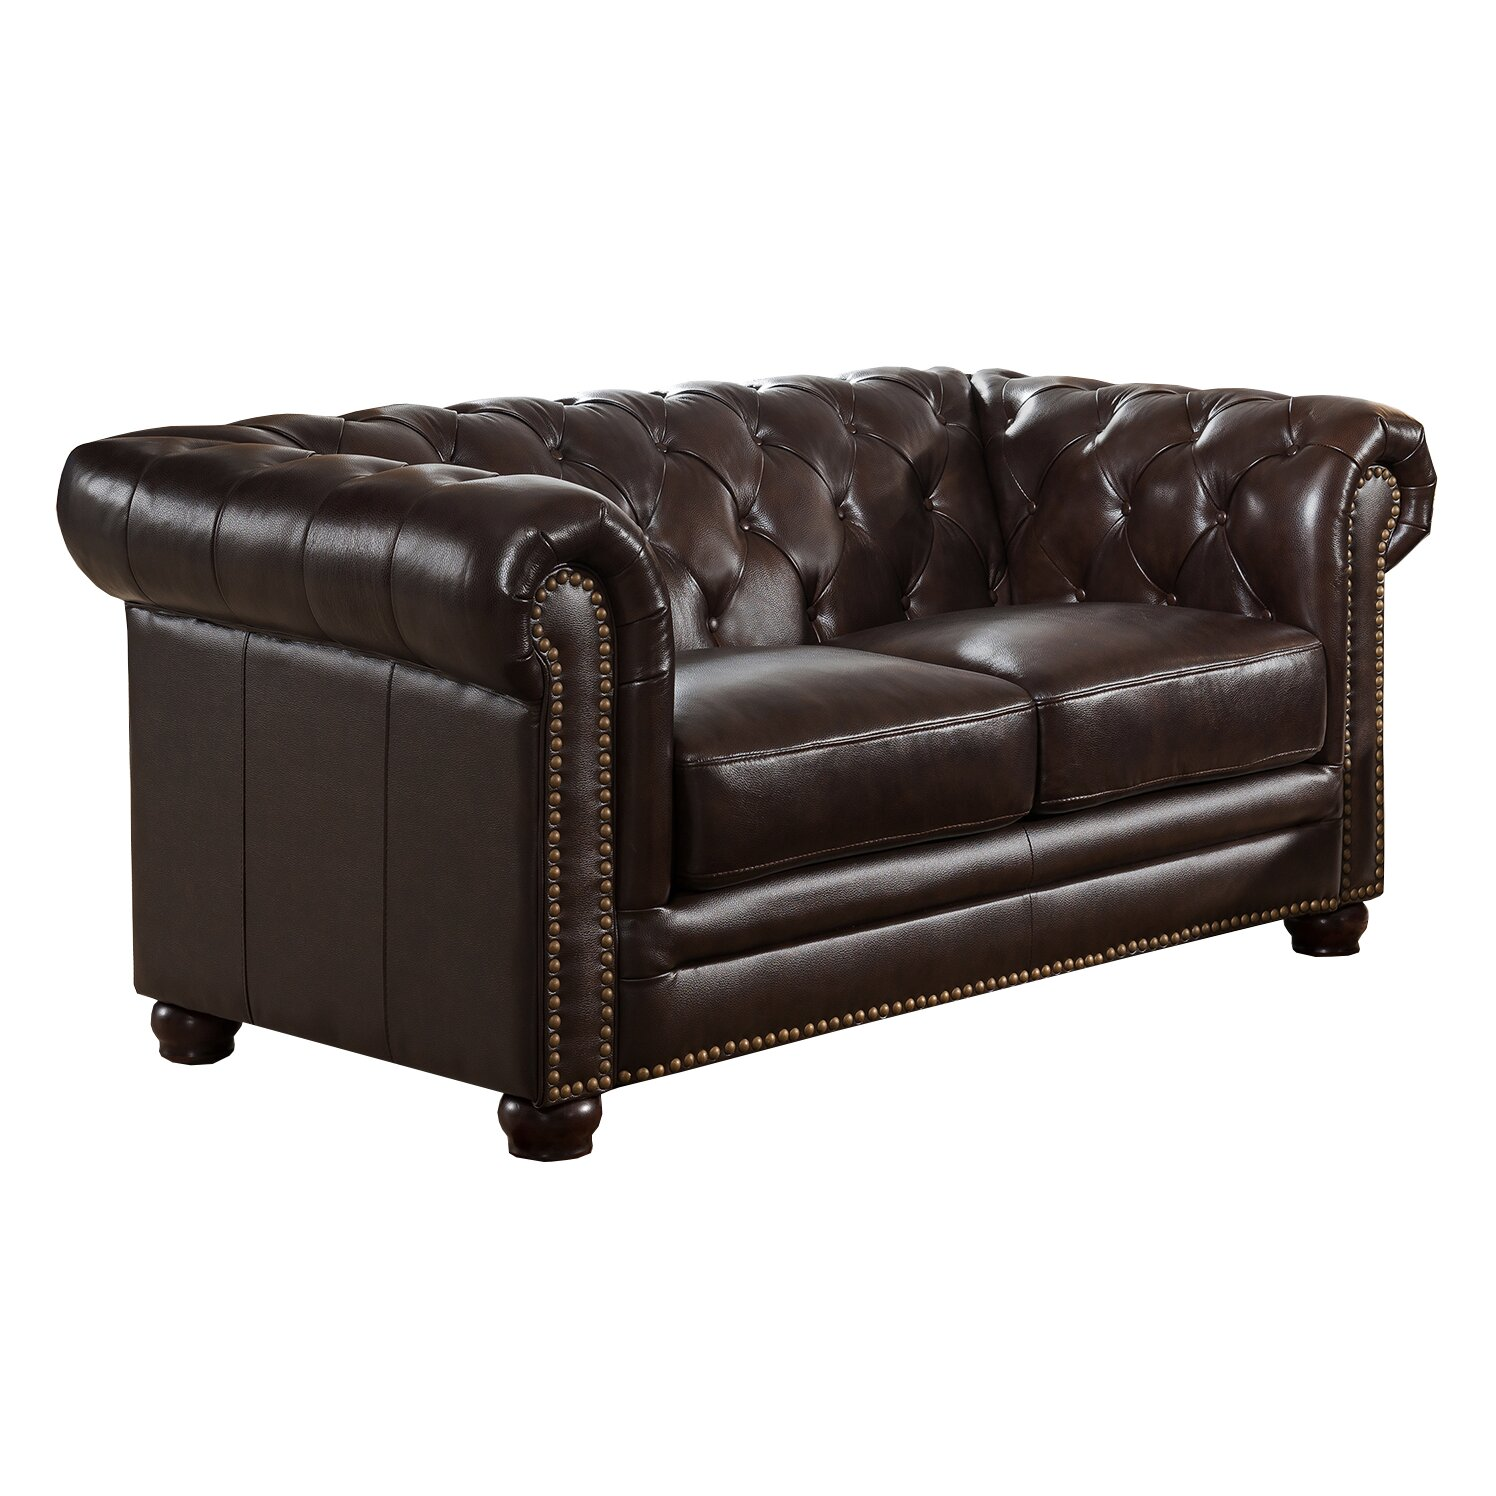 Amax kensington top grain leather chesterfield sofa loveseat and chair set wayfair Sofa loveseat